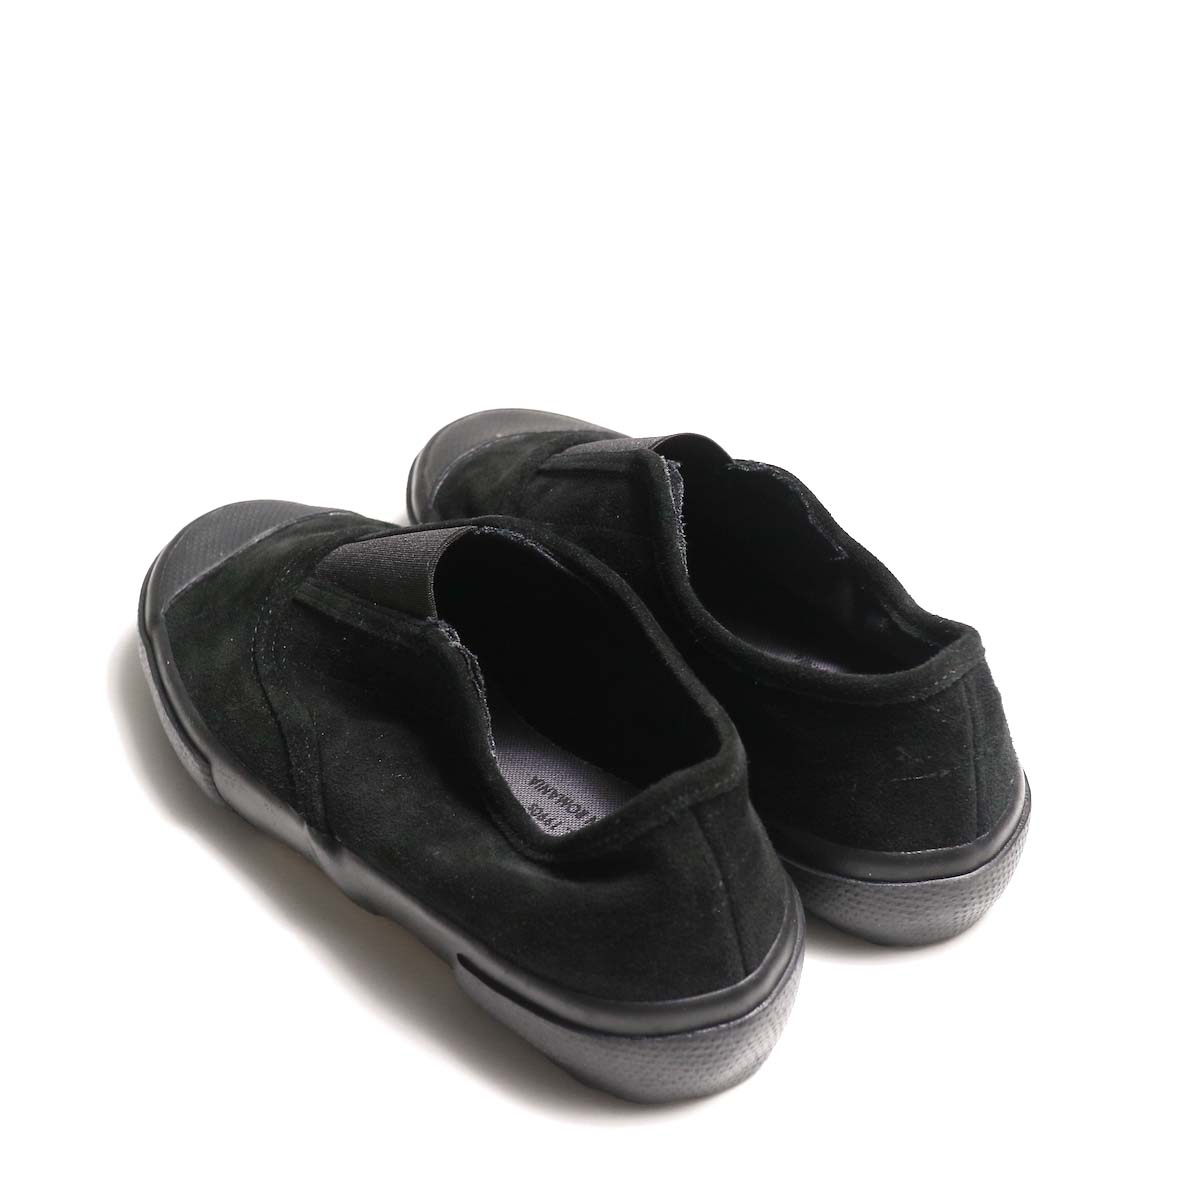 REPRODUCTION OF FOUND / ITALIAN MILITARY TRAINER (Black Suede)背面